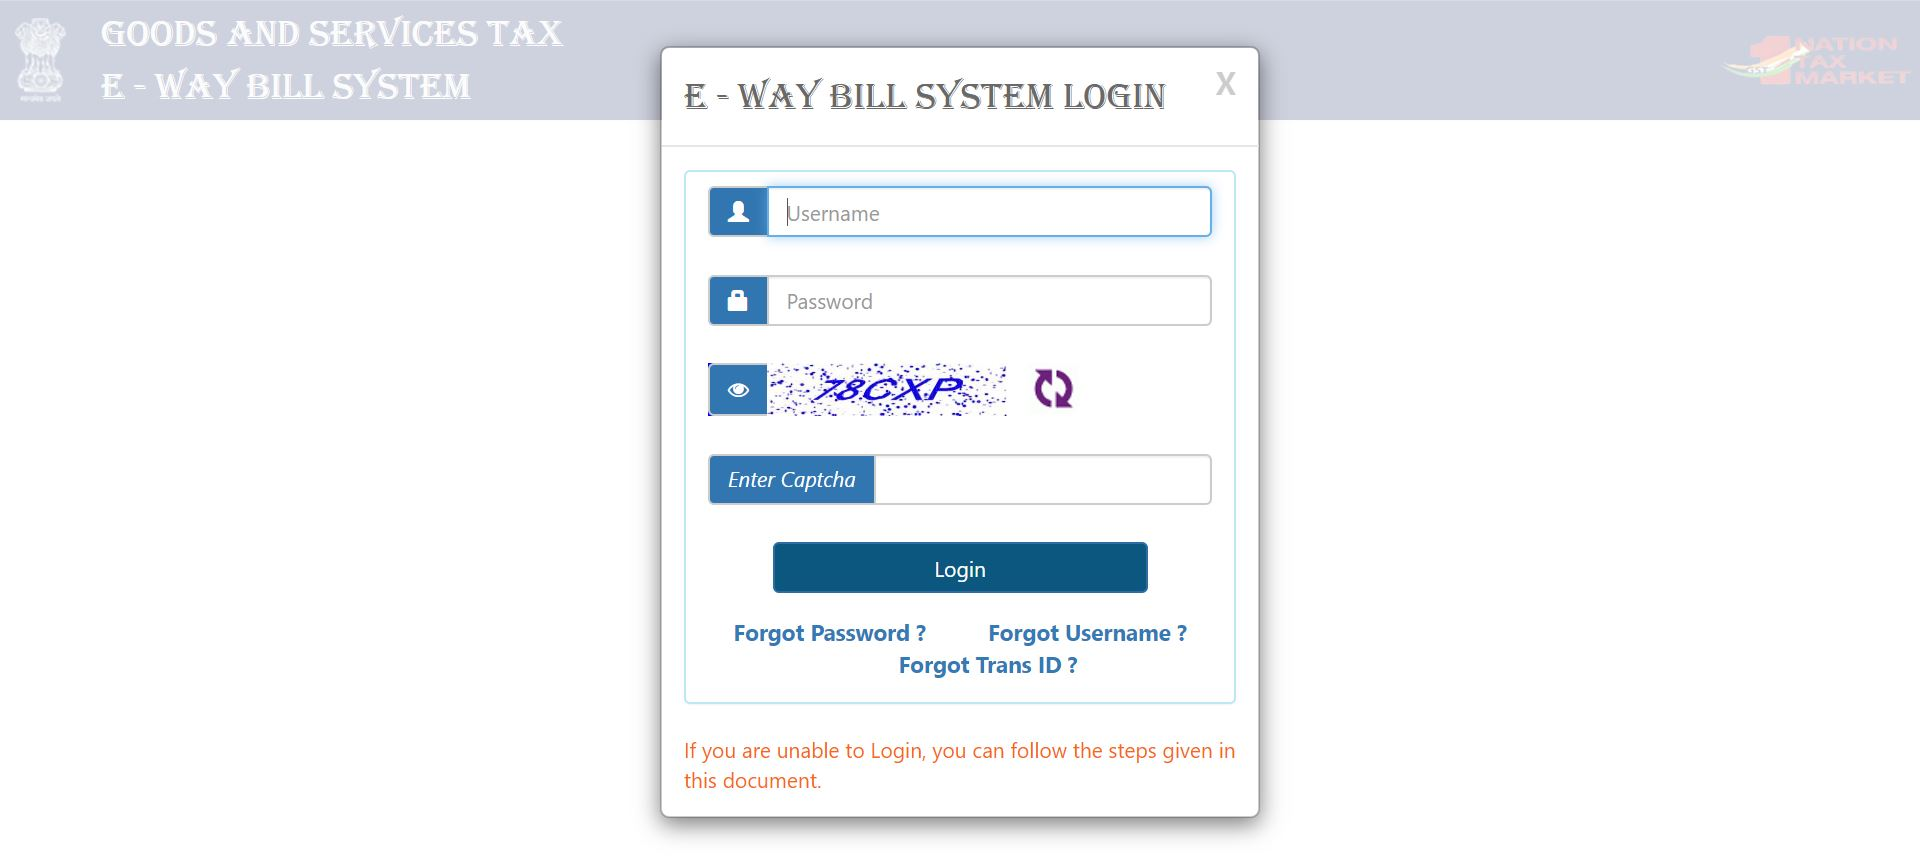 E-way bill login